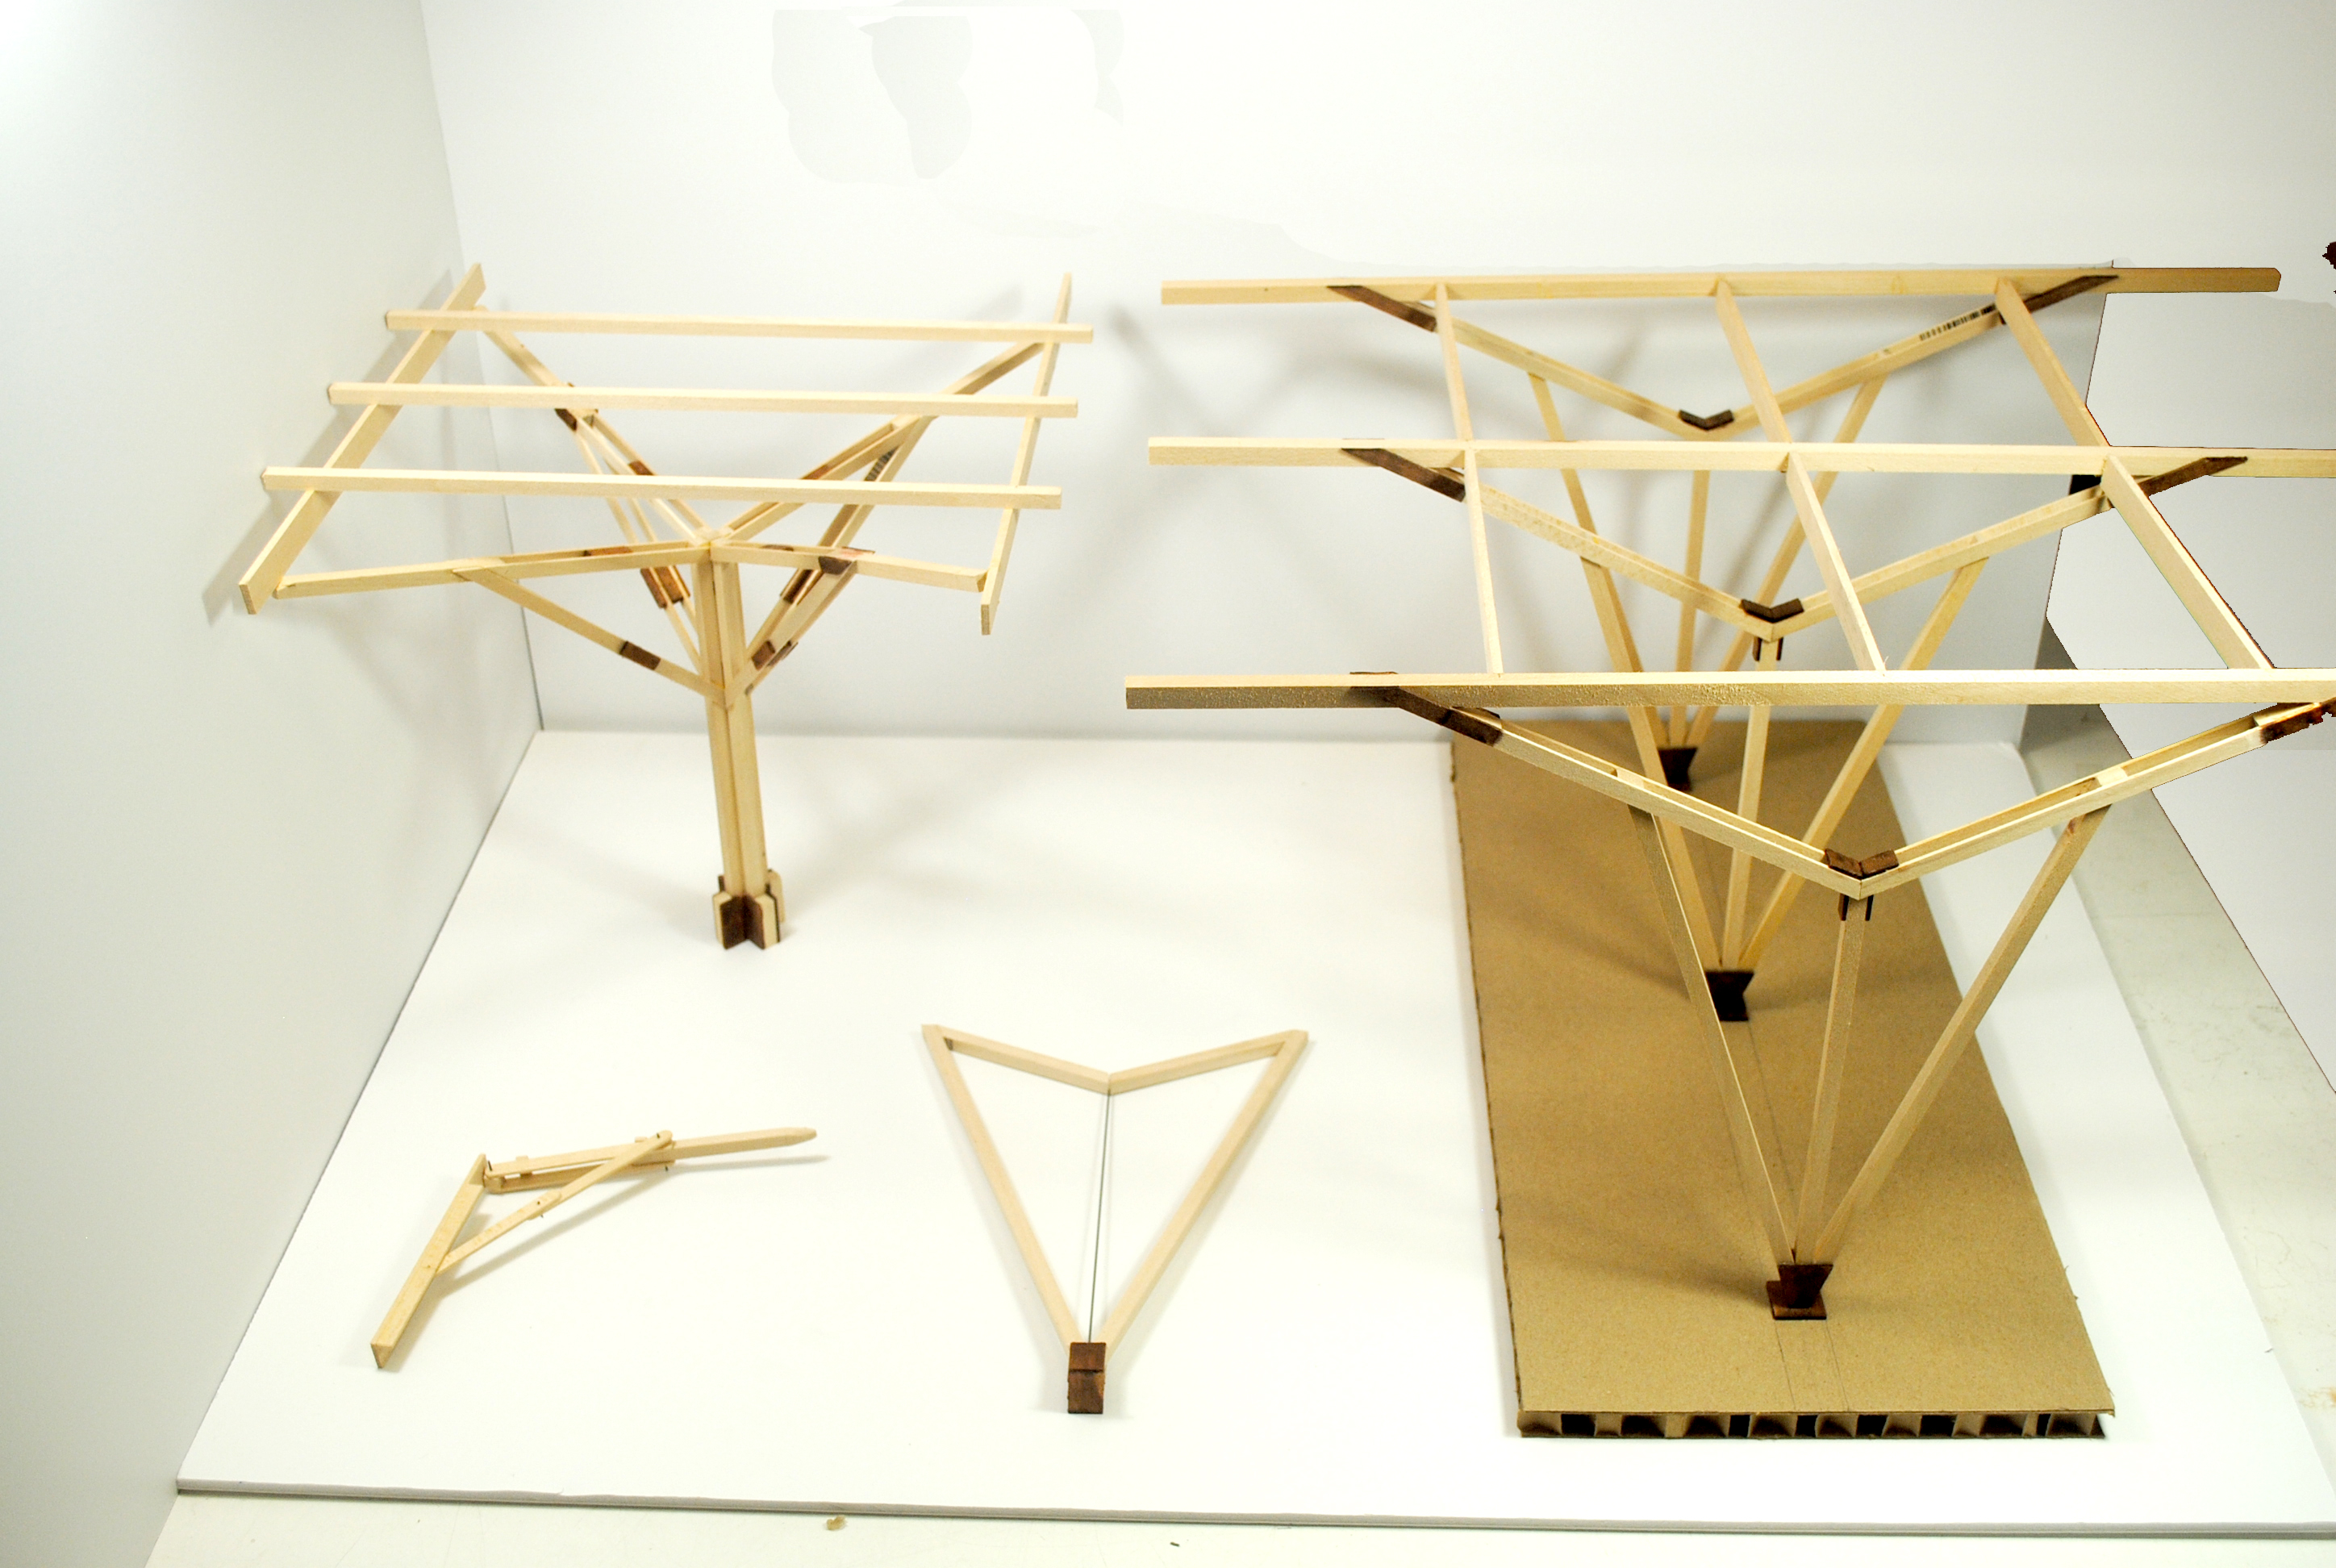 final structural study models